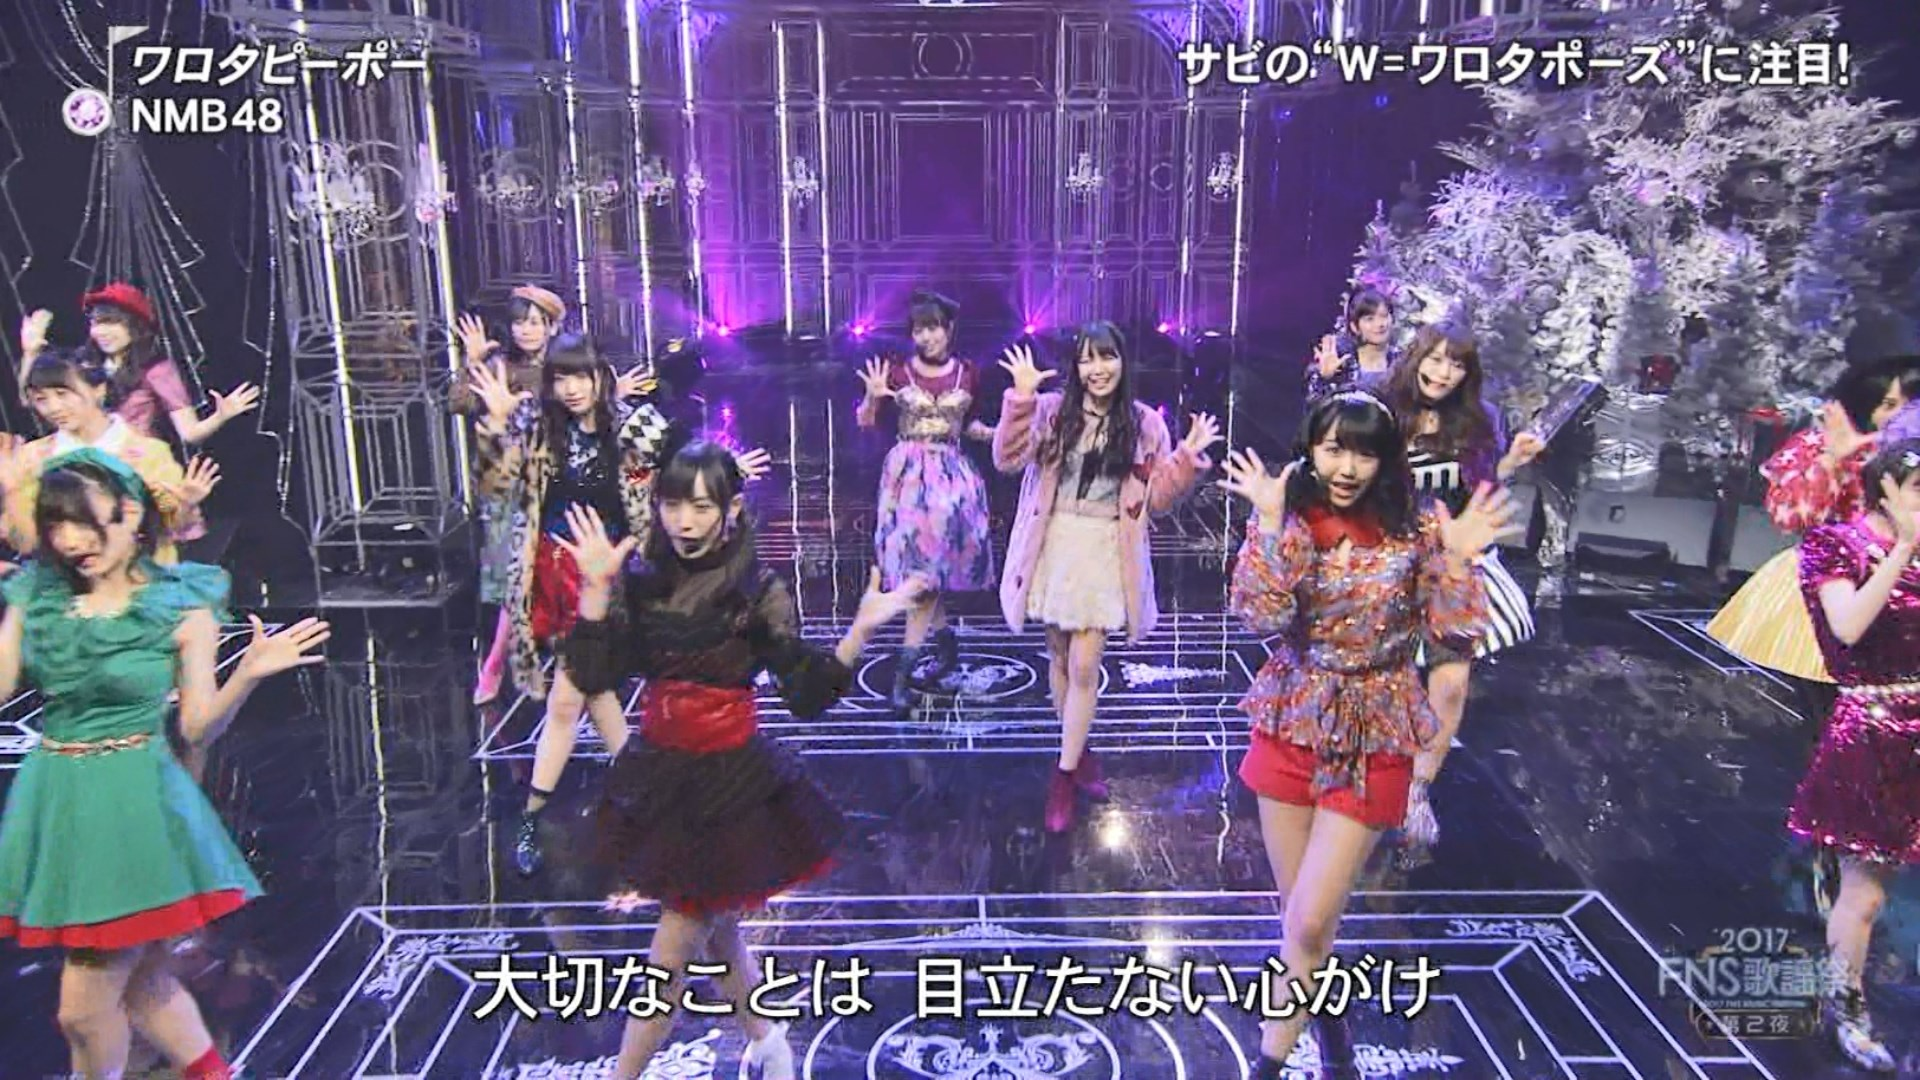 2017FNS歌謡祭第2夜・NMB48ワロタピーポーキャプ-040